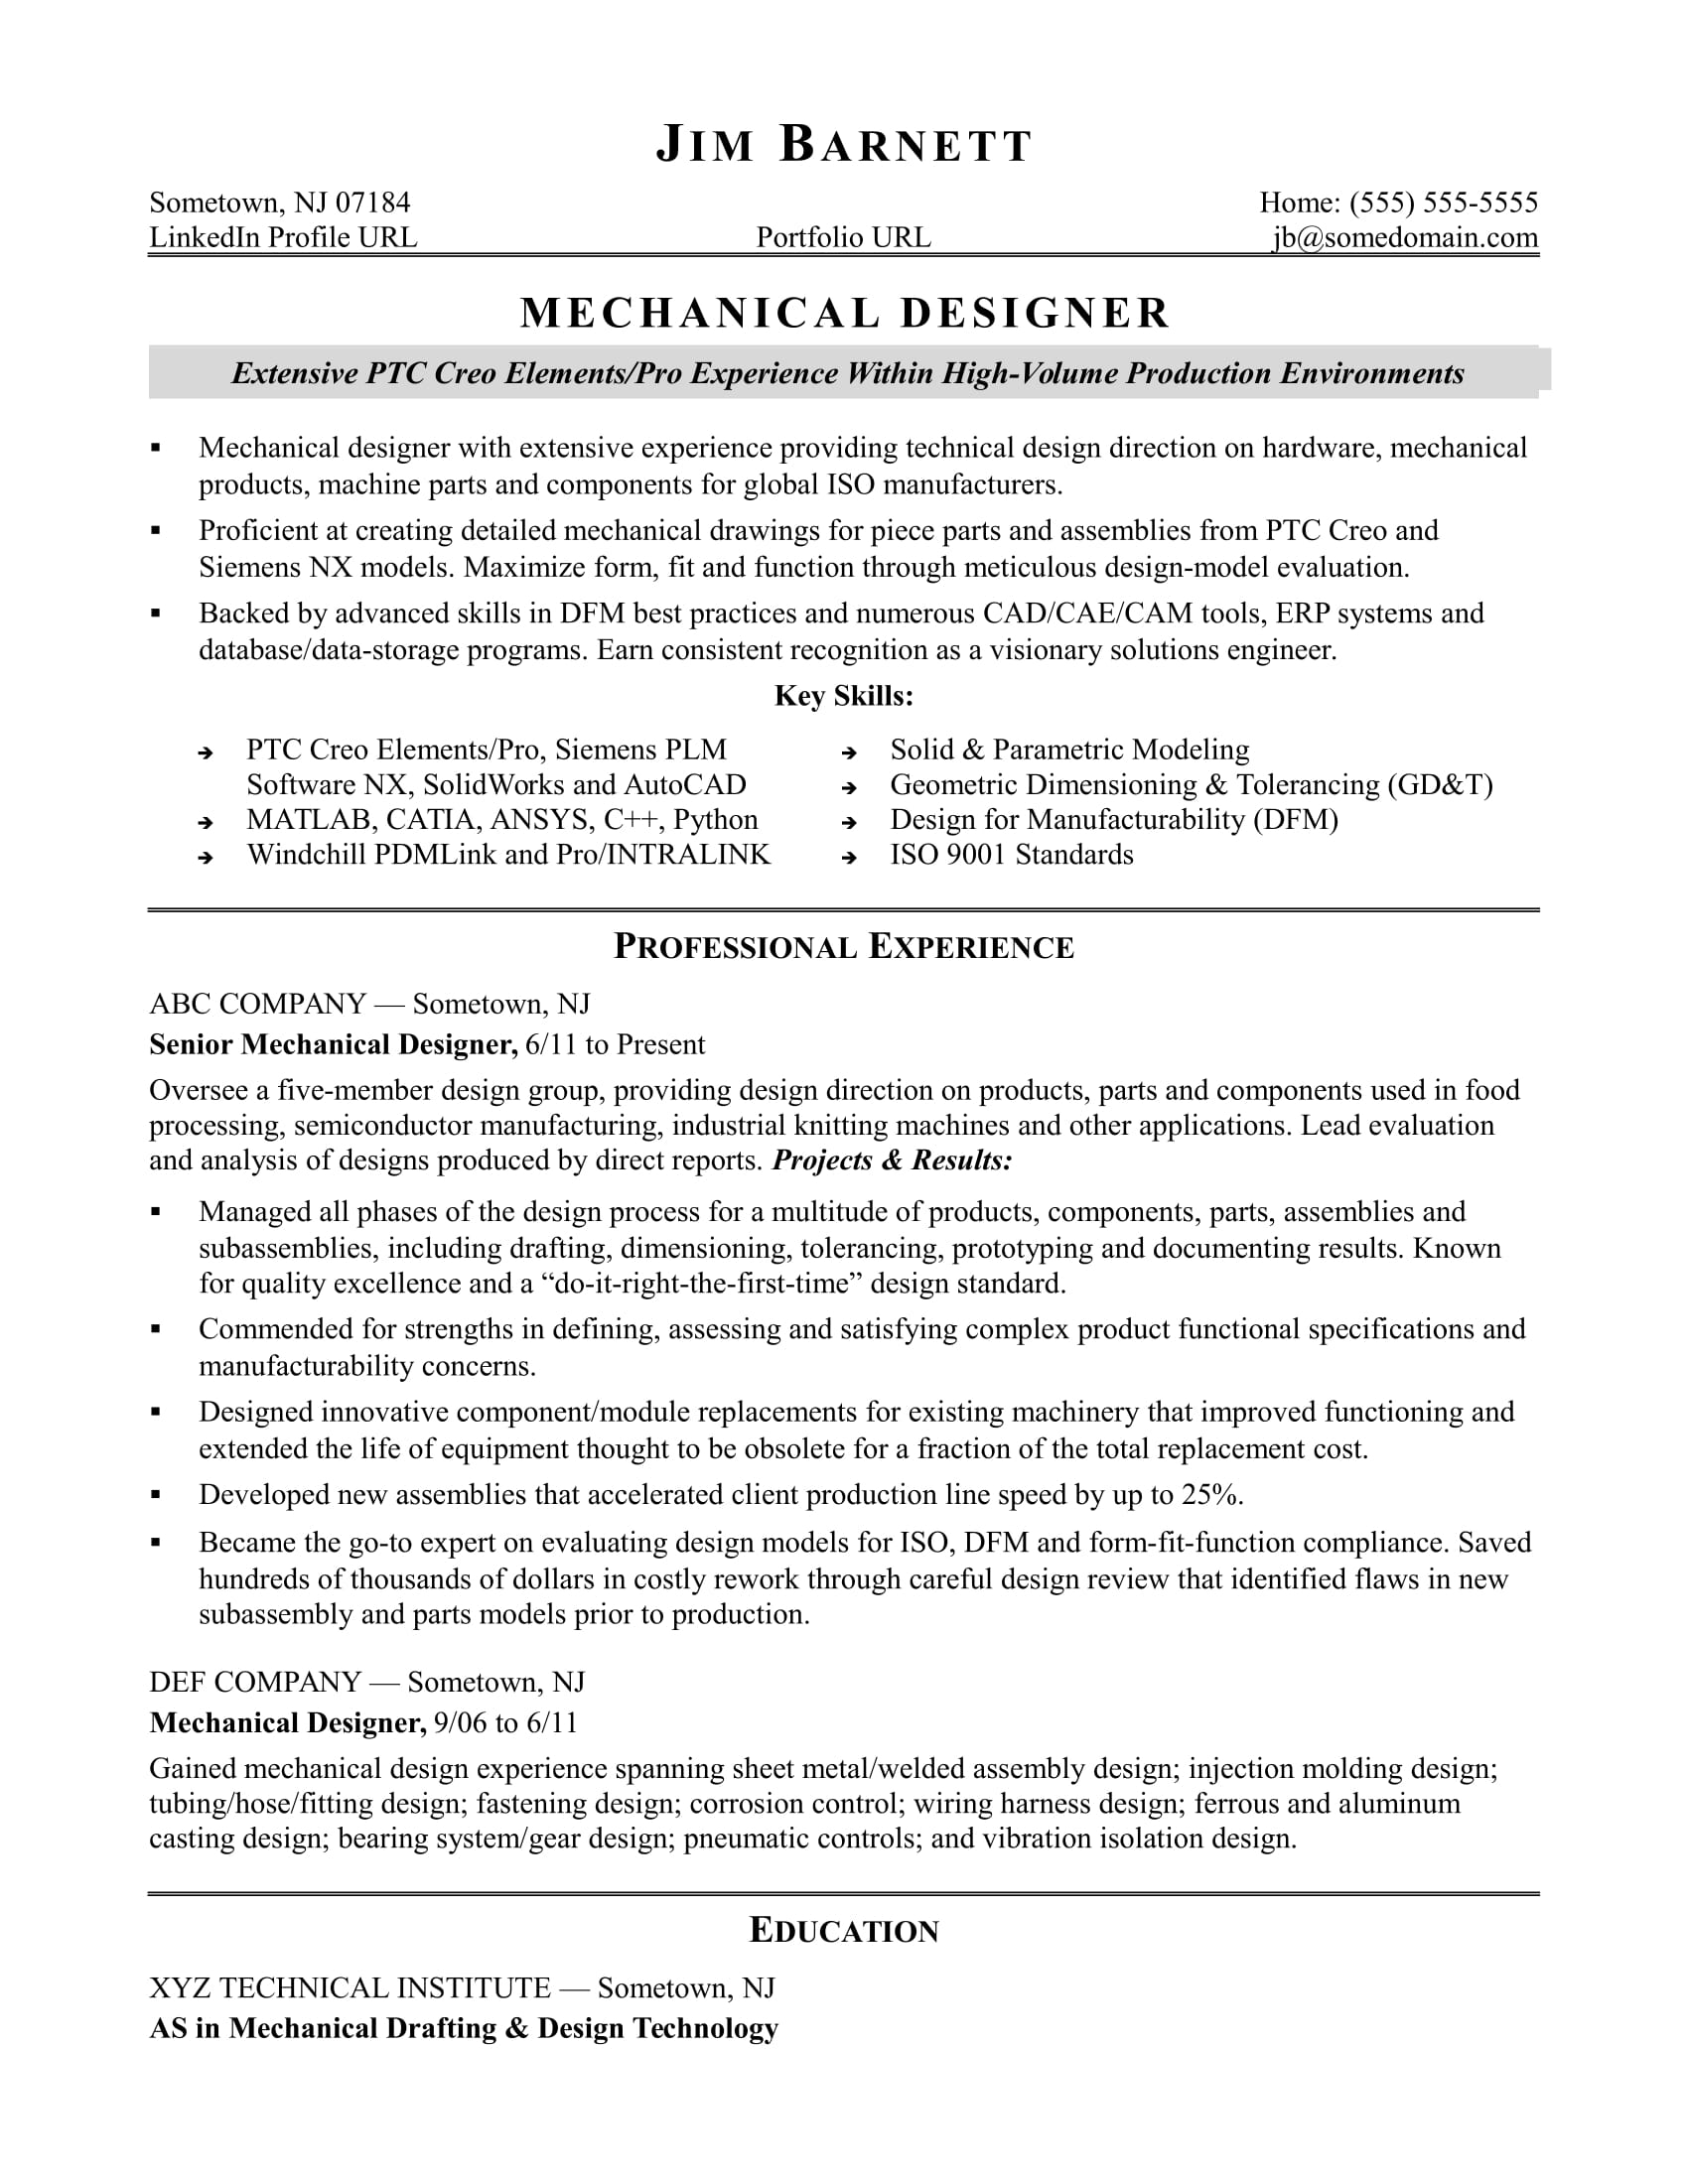 sample resume for an experienced mechanical designer monster experience clear free Resume Experience Sample Resume